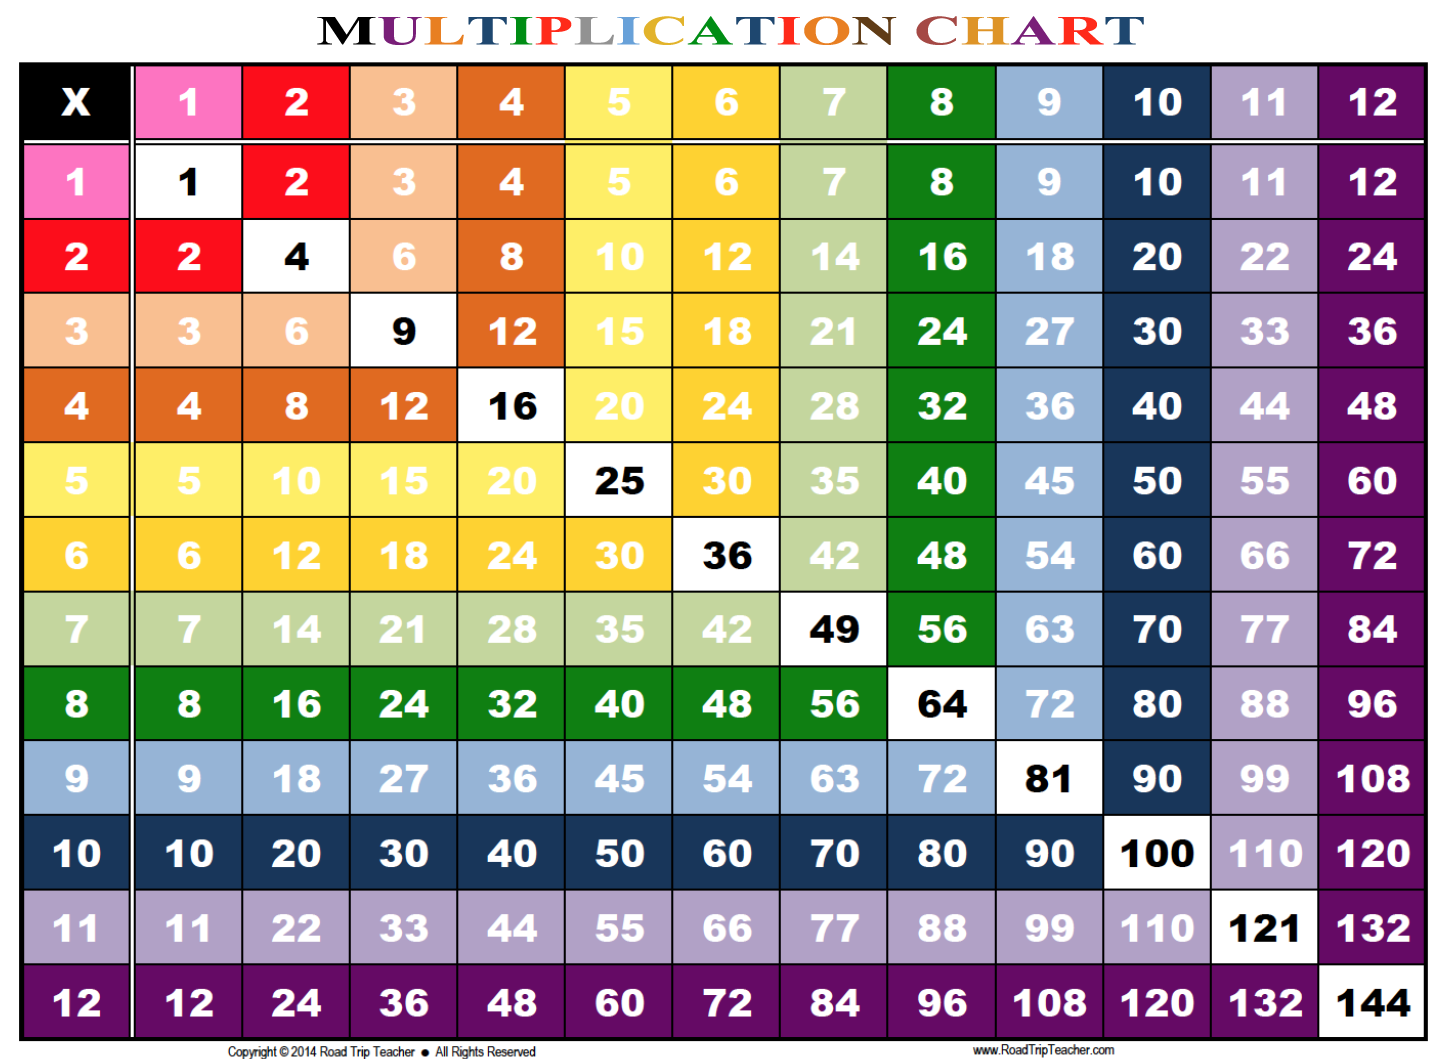 Rainbow multiplication chart family educational resources road rainbow multiplication chart gamestrikefo Image collections